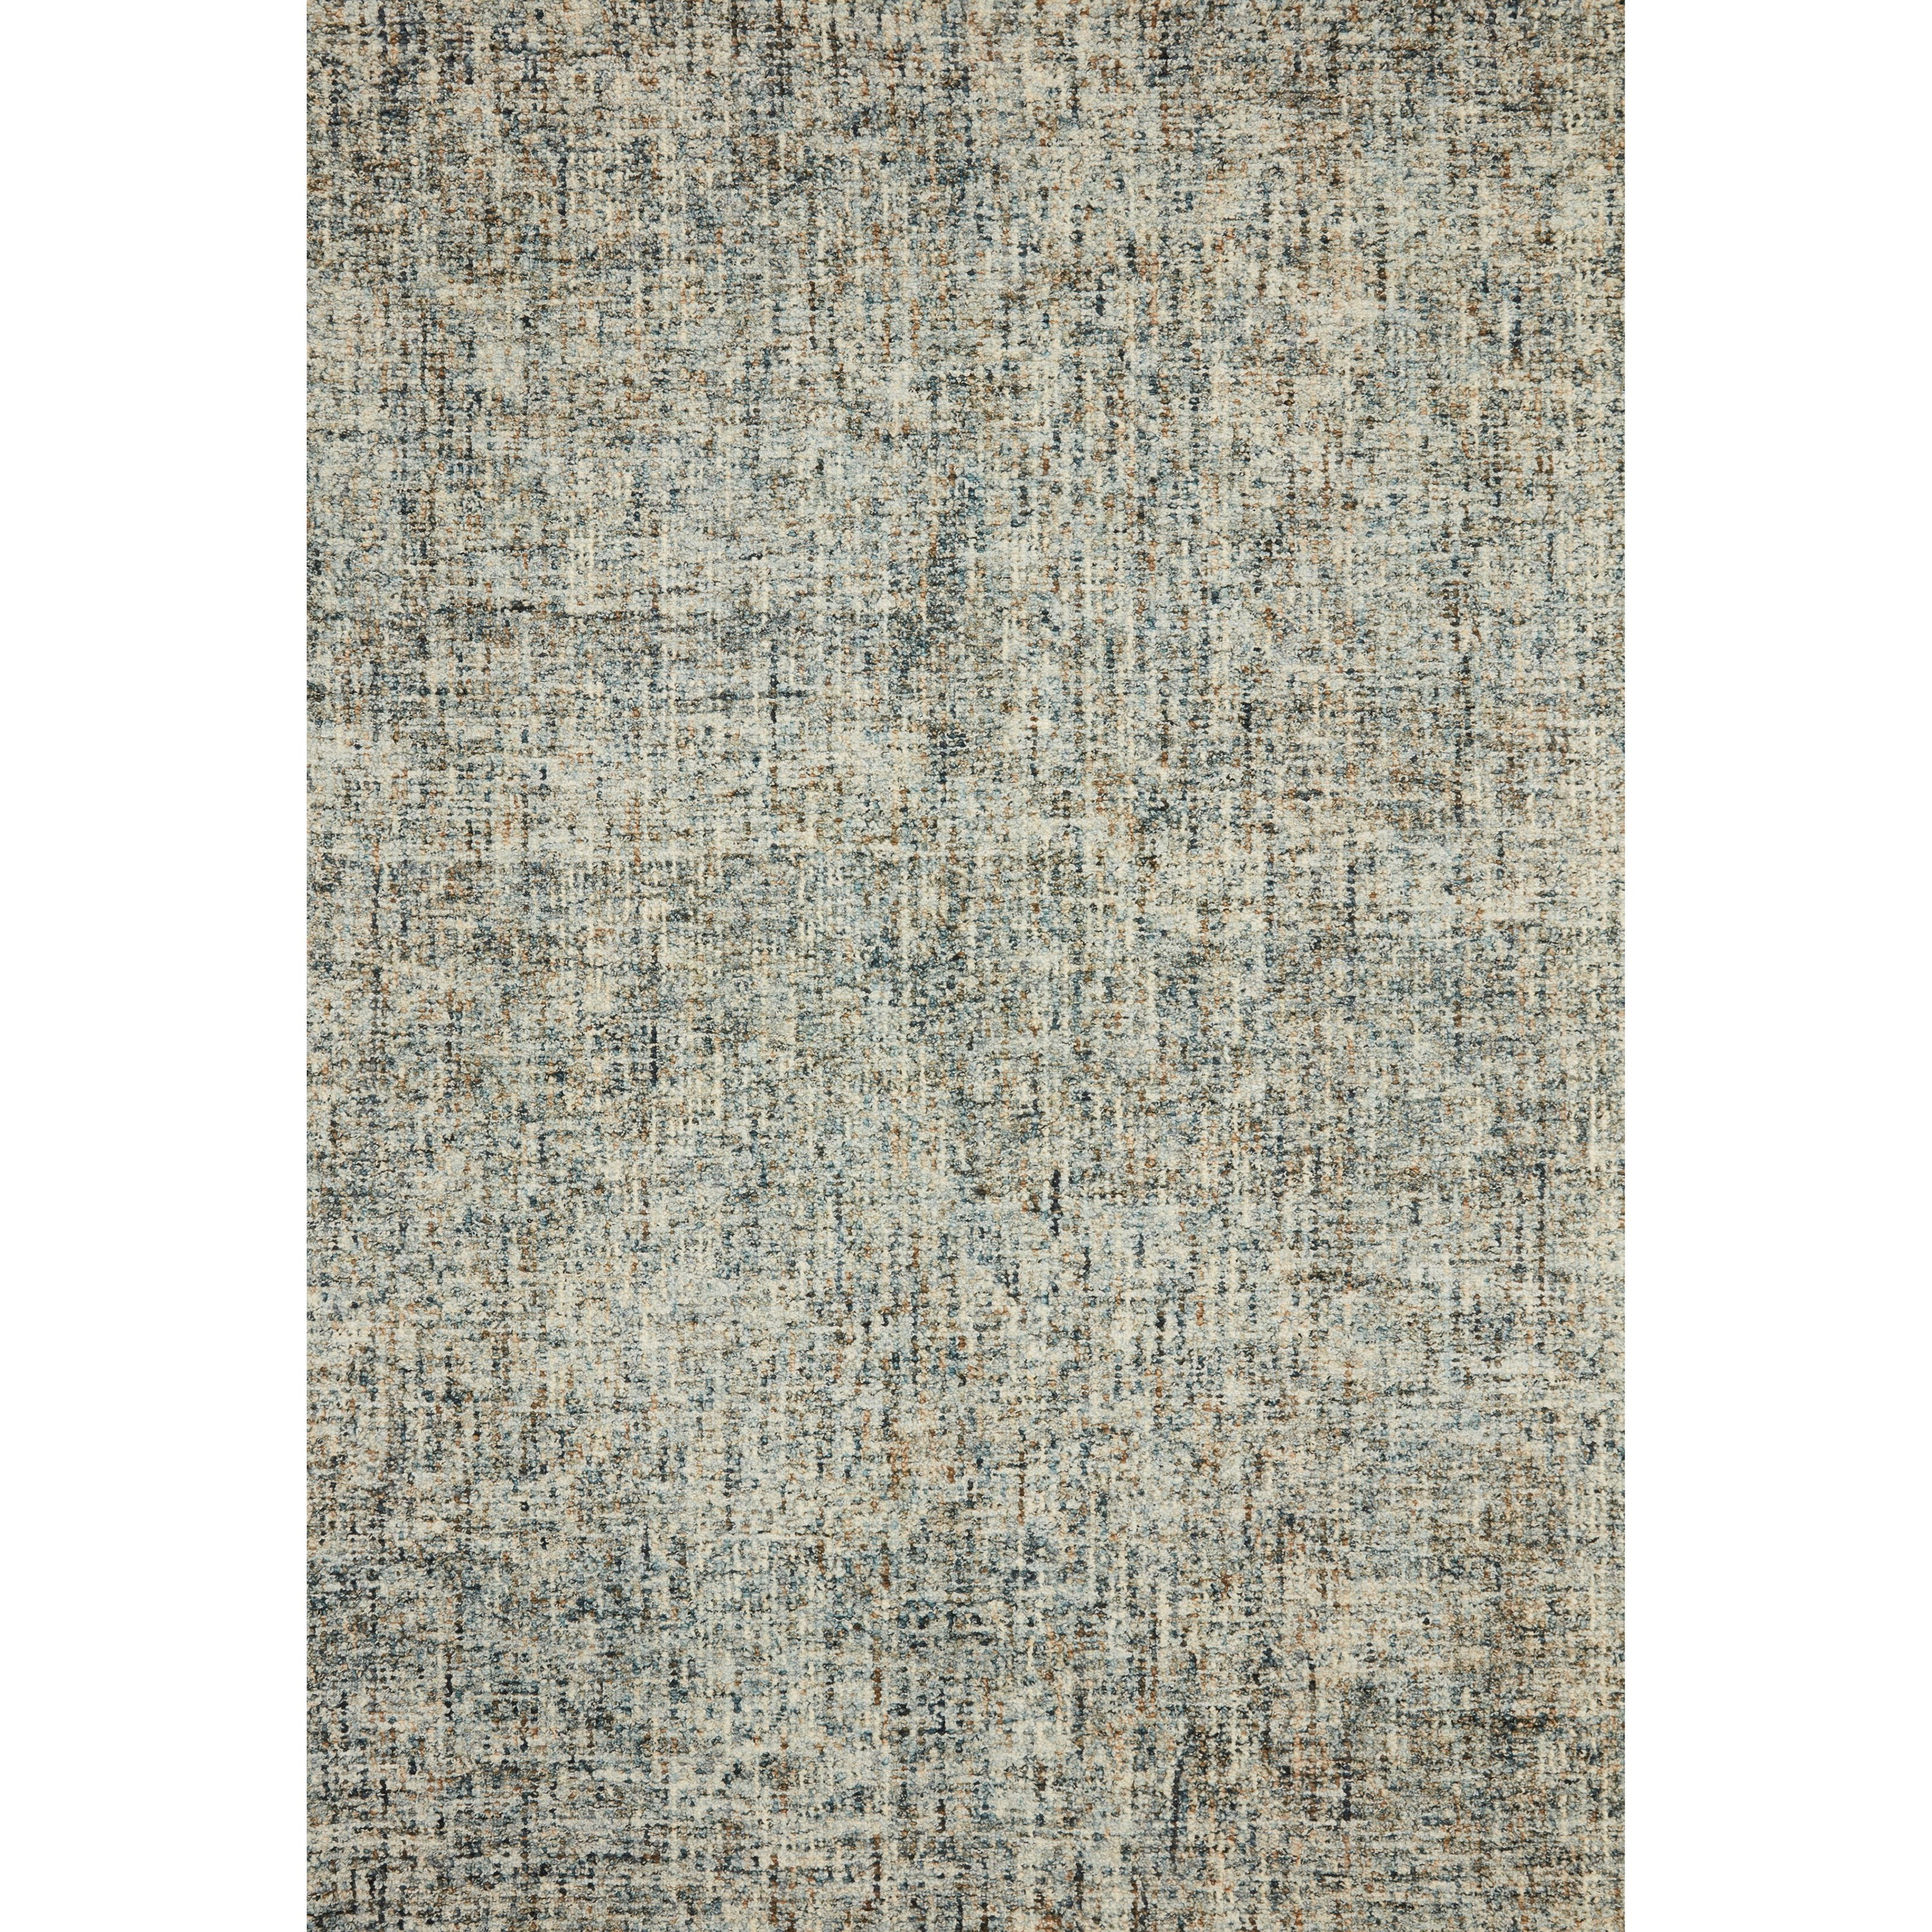 """Harlow 8'6"""" x 12' Ocean / Sand Rug by Loloi Rugs at Virginia Furniture Market"""